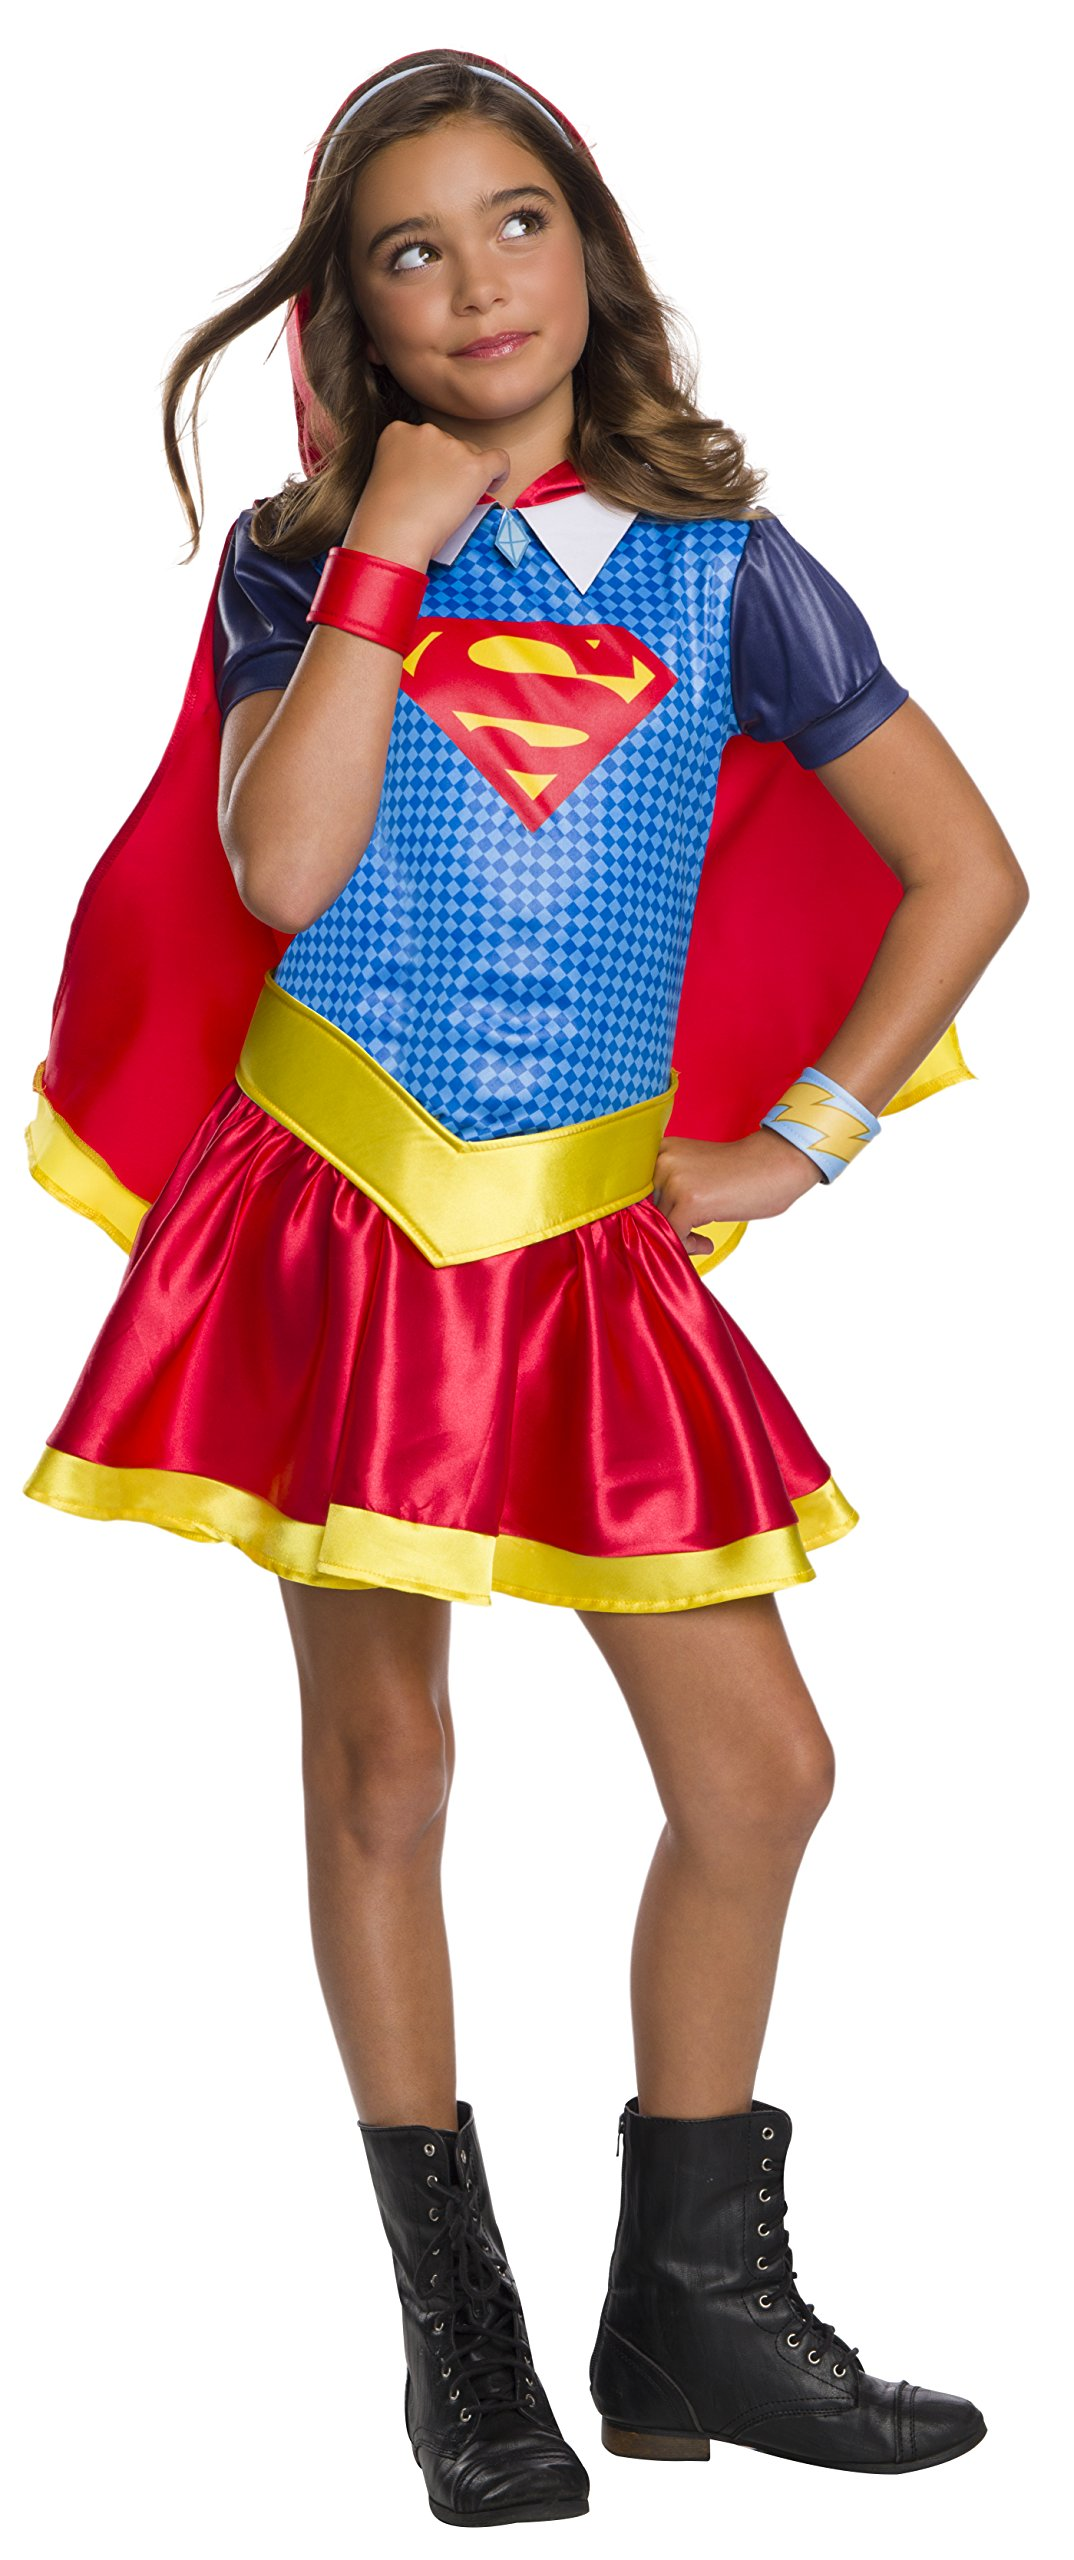 - 81G0HgX 2BgTL - Rubie's DC Super Hero Girls Hoodie Dress Childrens Costume, Supergirl, Medium